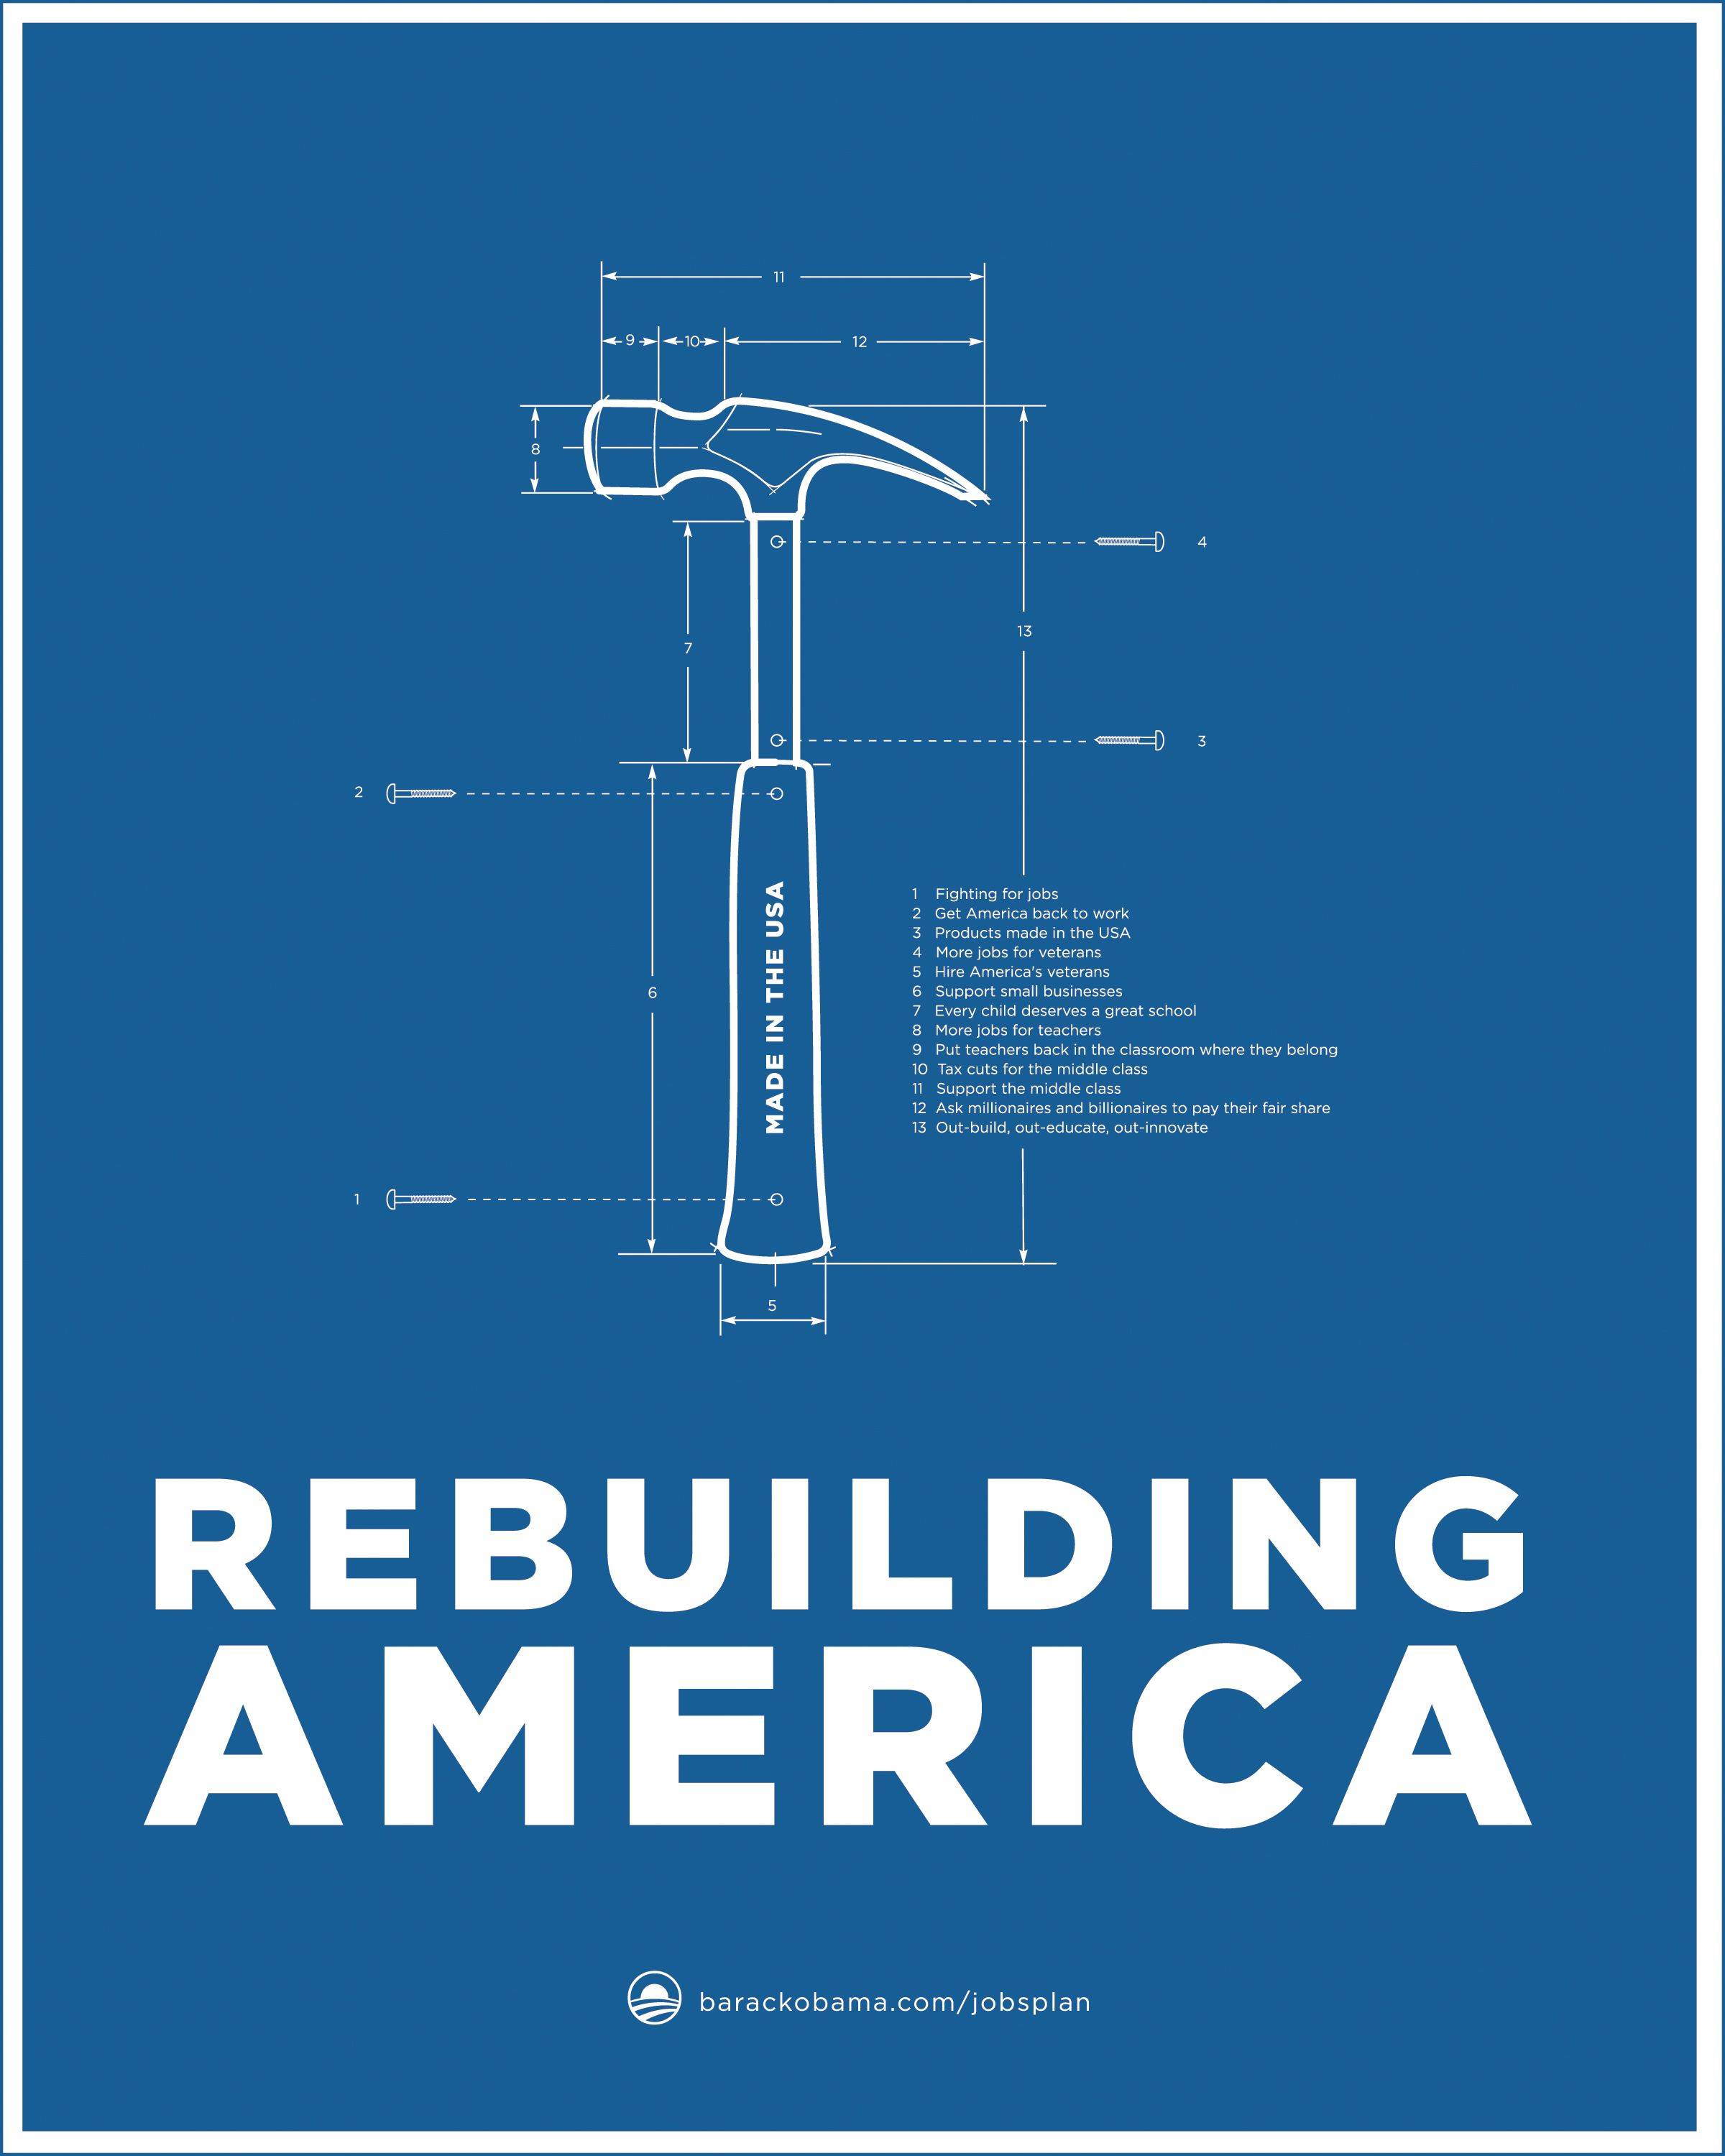 Obama jobs act blueprint poster series hammer by aram asarian at obama jobs act blueprint poster series hammer by aram asarian at aram designs malvernweather Choice Image